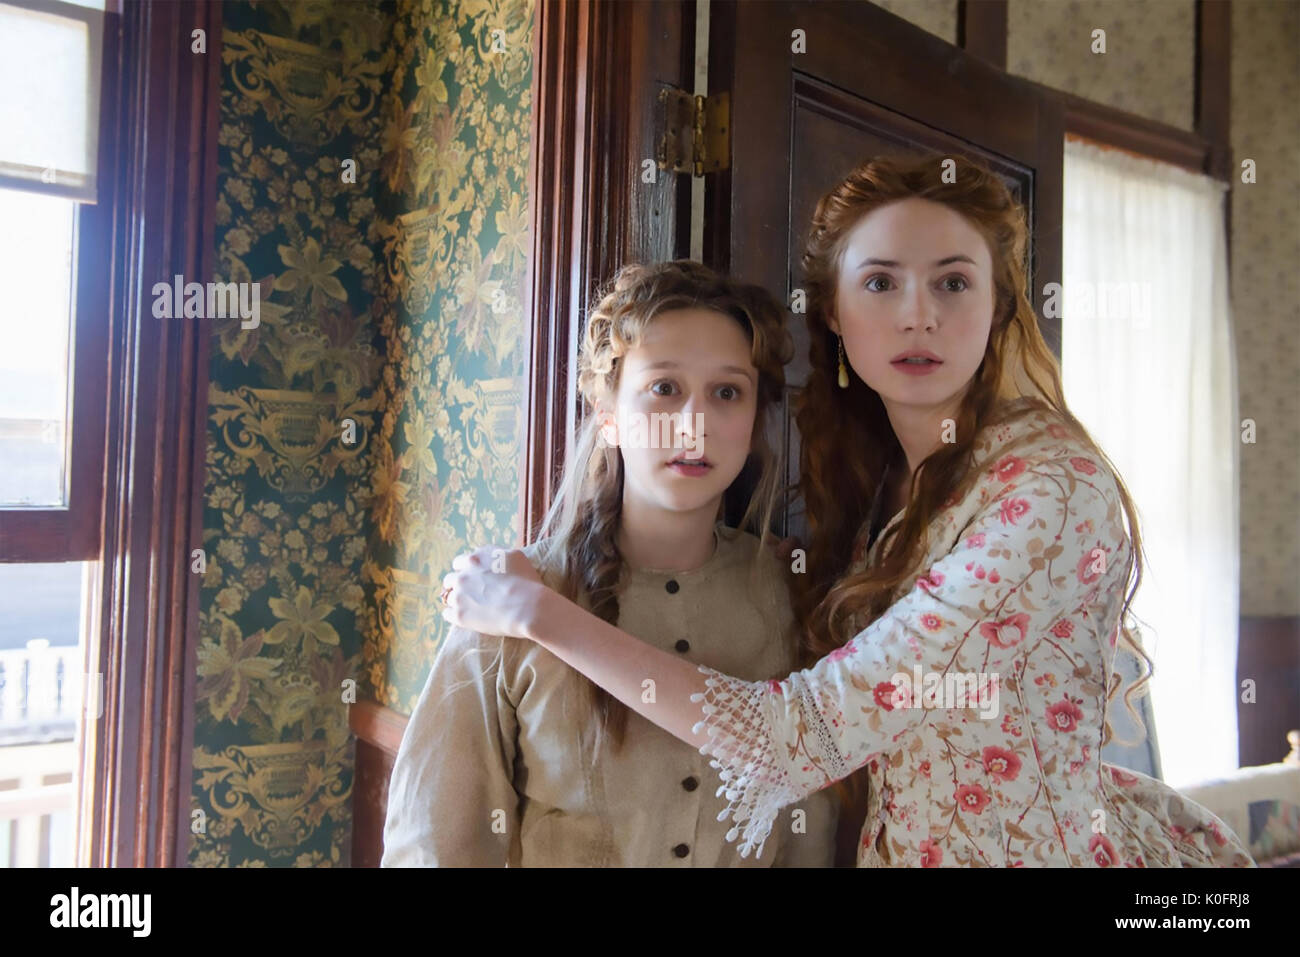 IN A VELLEY OF VIOLENCE  2016 Blumhouse Productions  film with Karen Gillan at right and Taissa Farmiga - Stock Image